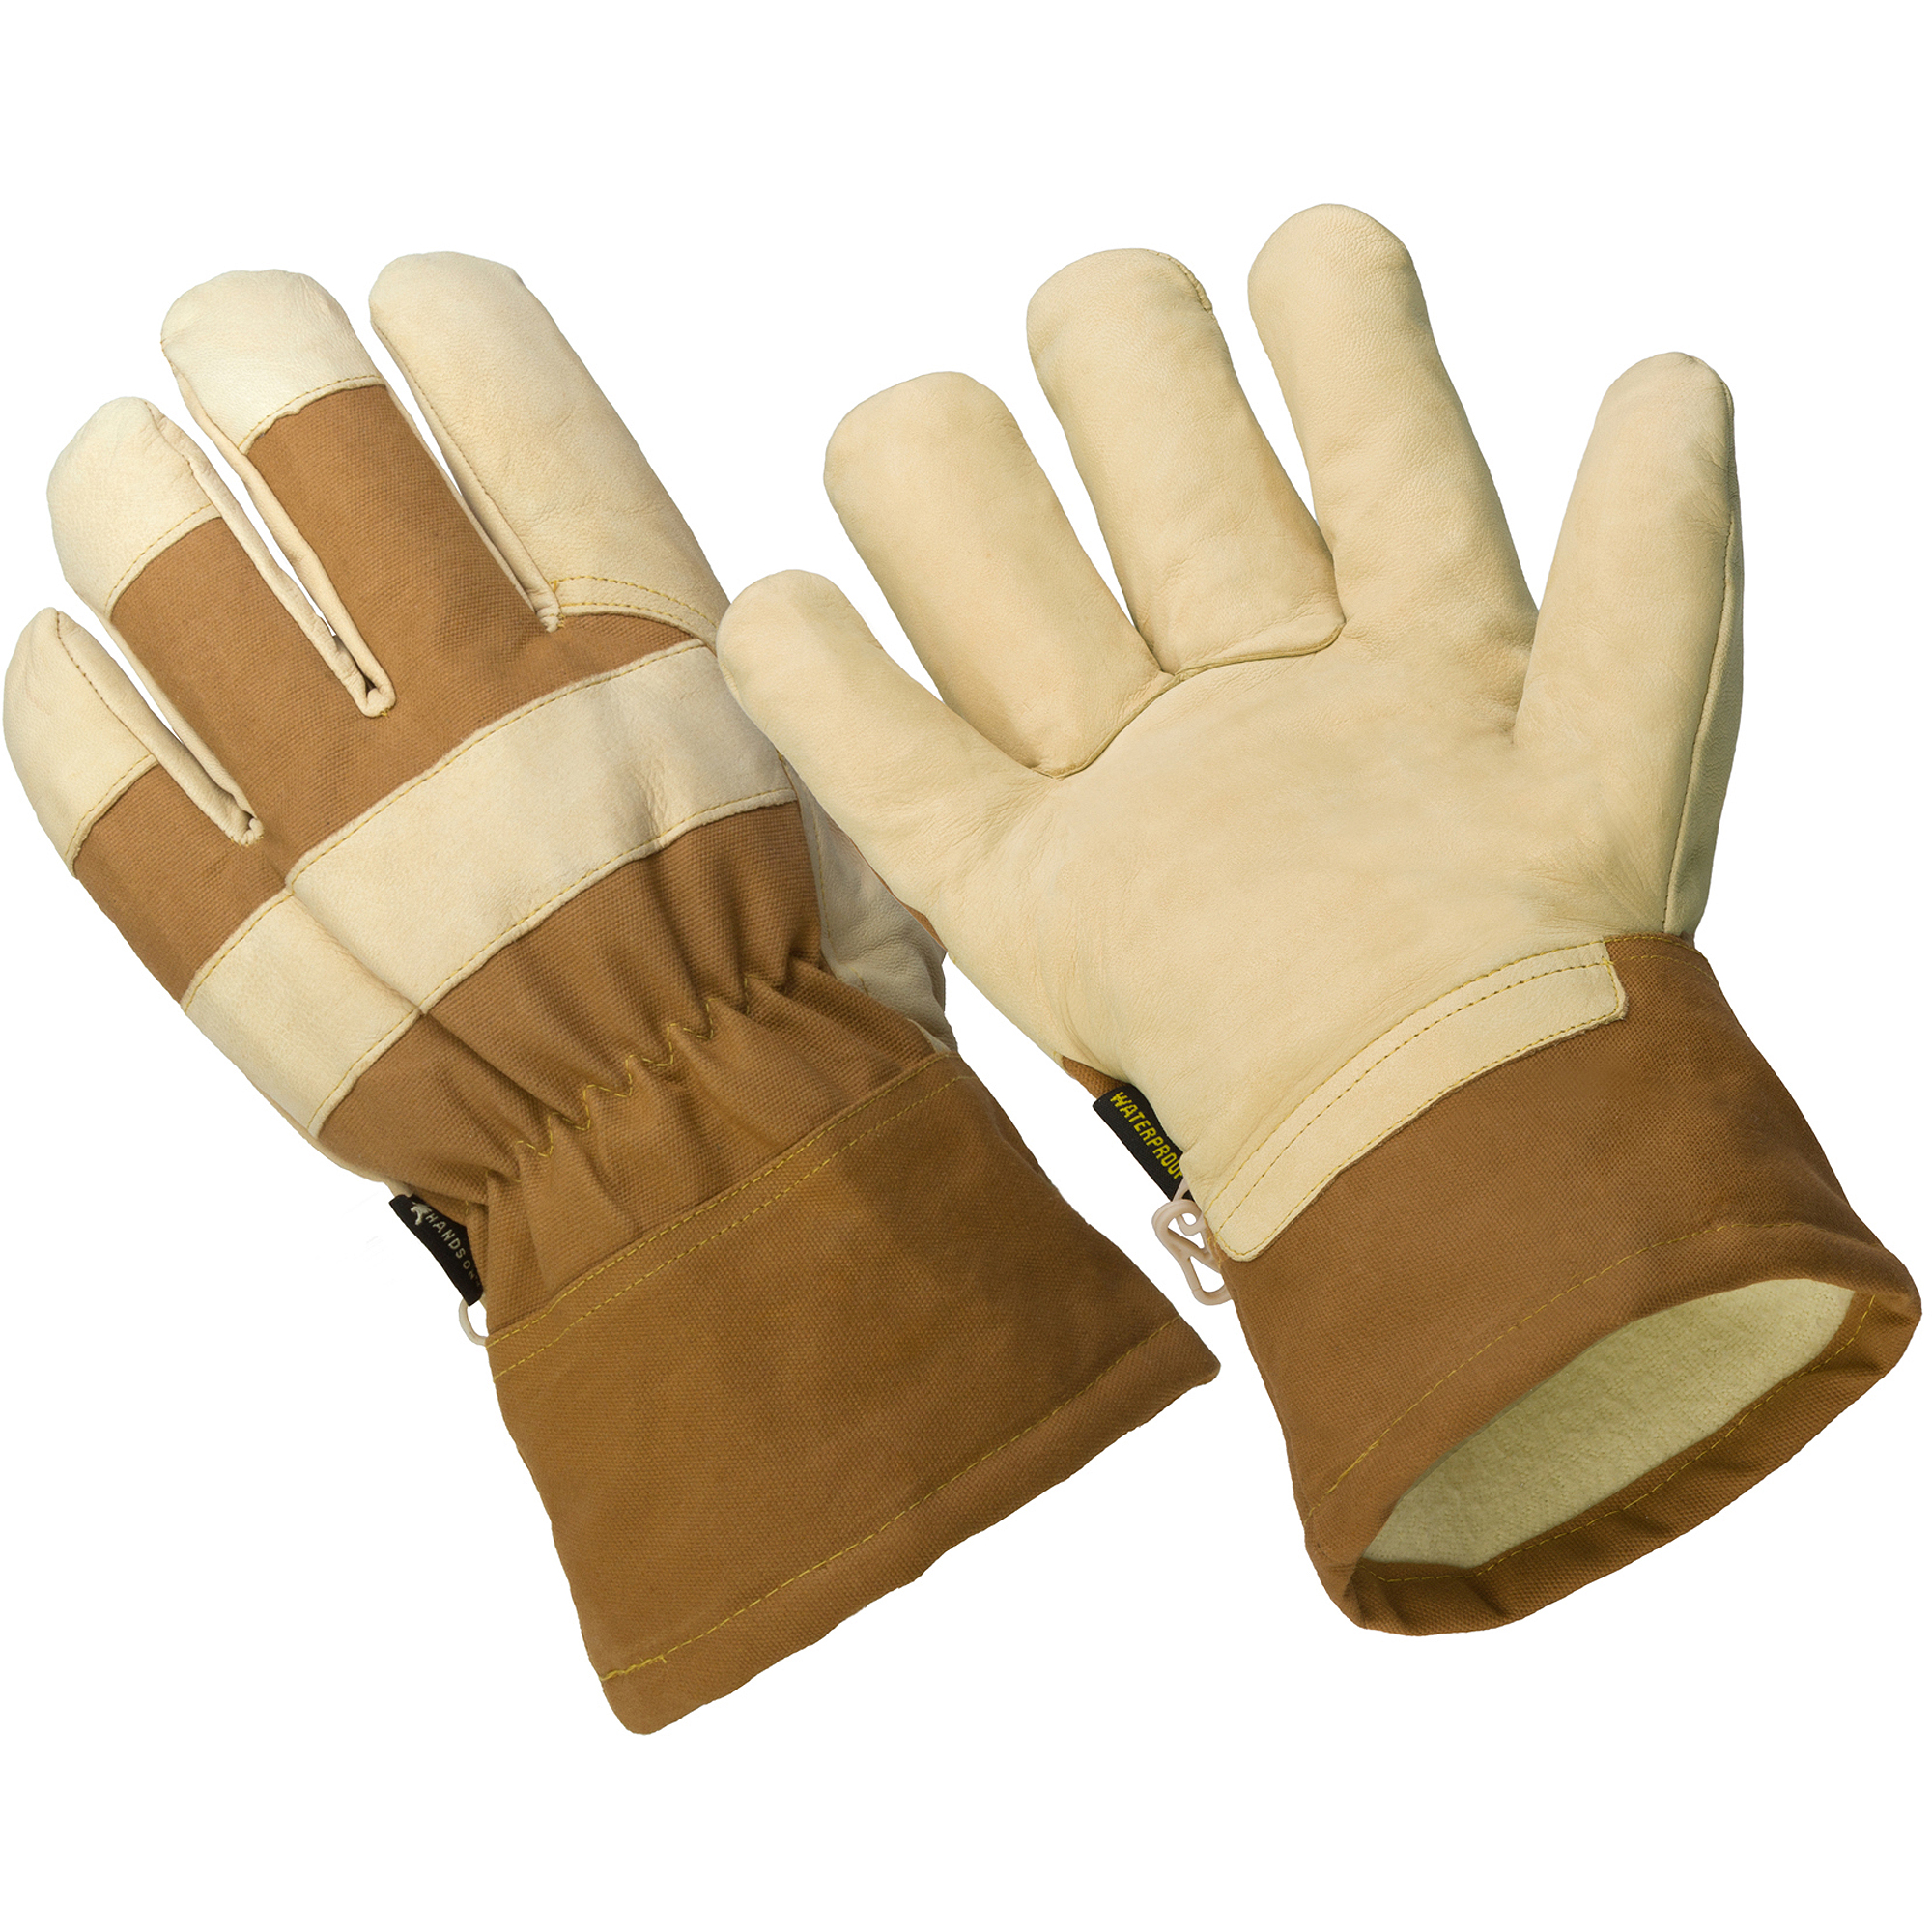 Hands On The Badger,  Thinsulate Lined Premium Goat Grain Leather Palm Glove, 100% Waterproof